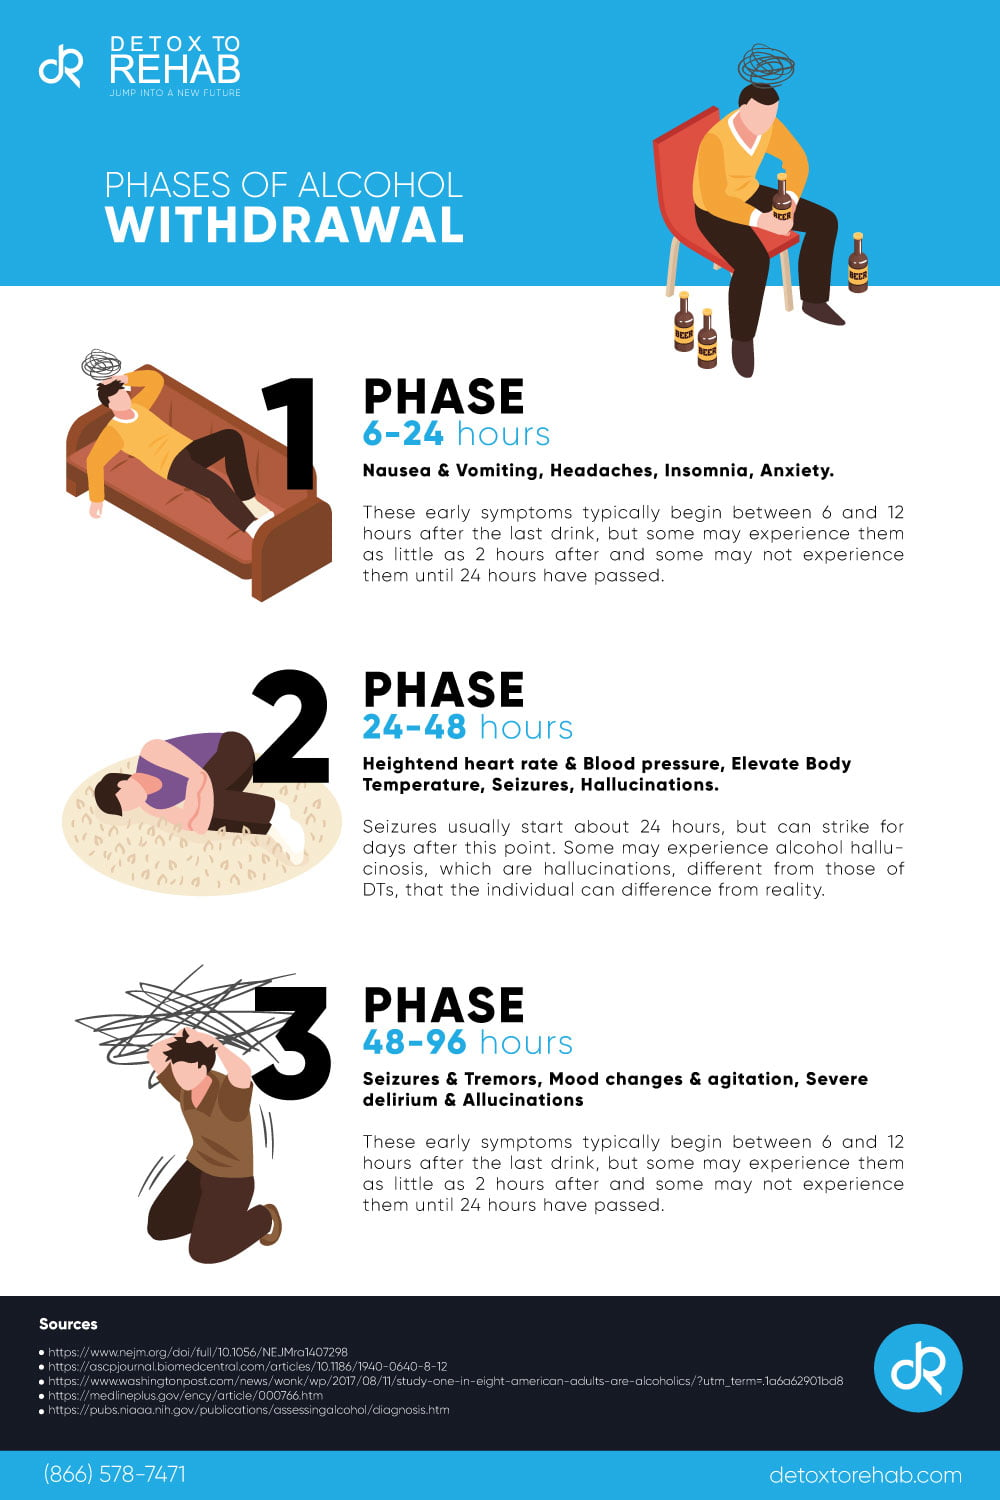 phases of alcohol withdrawal infographic